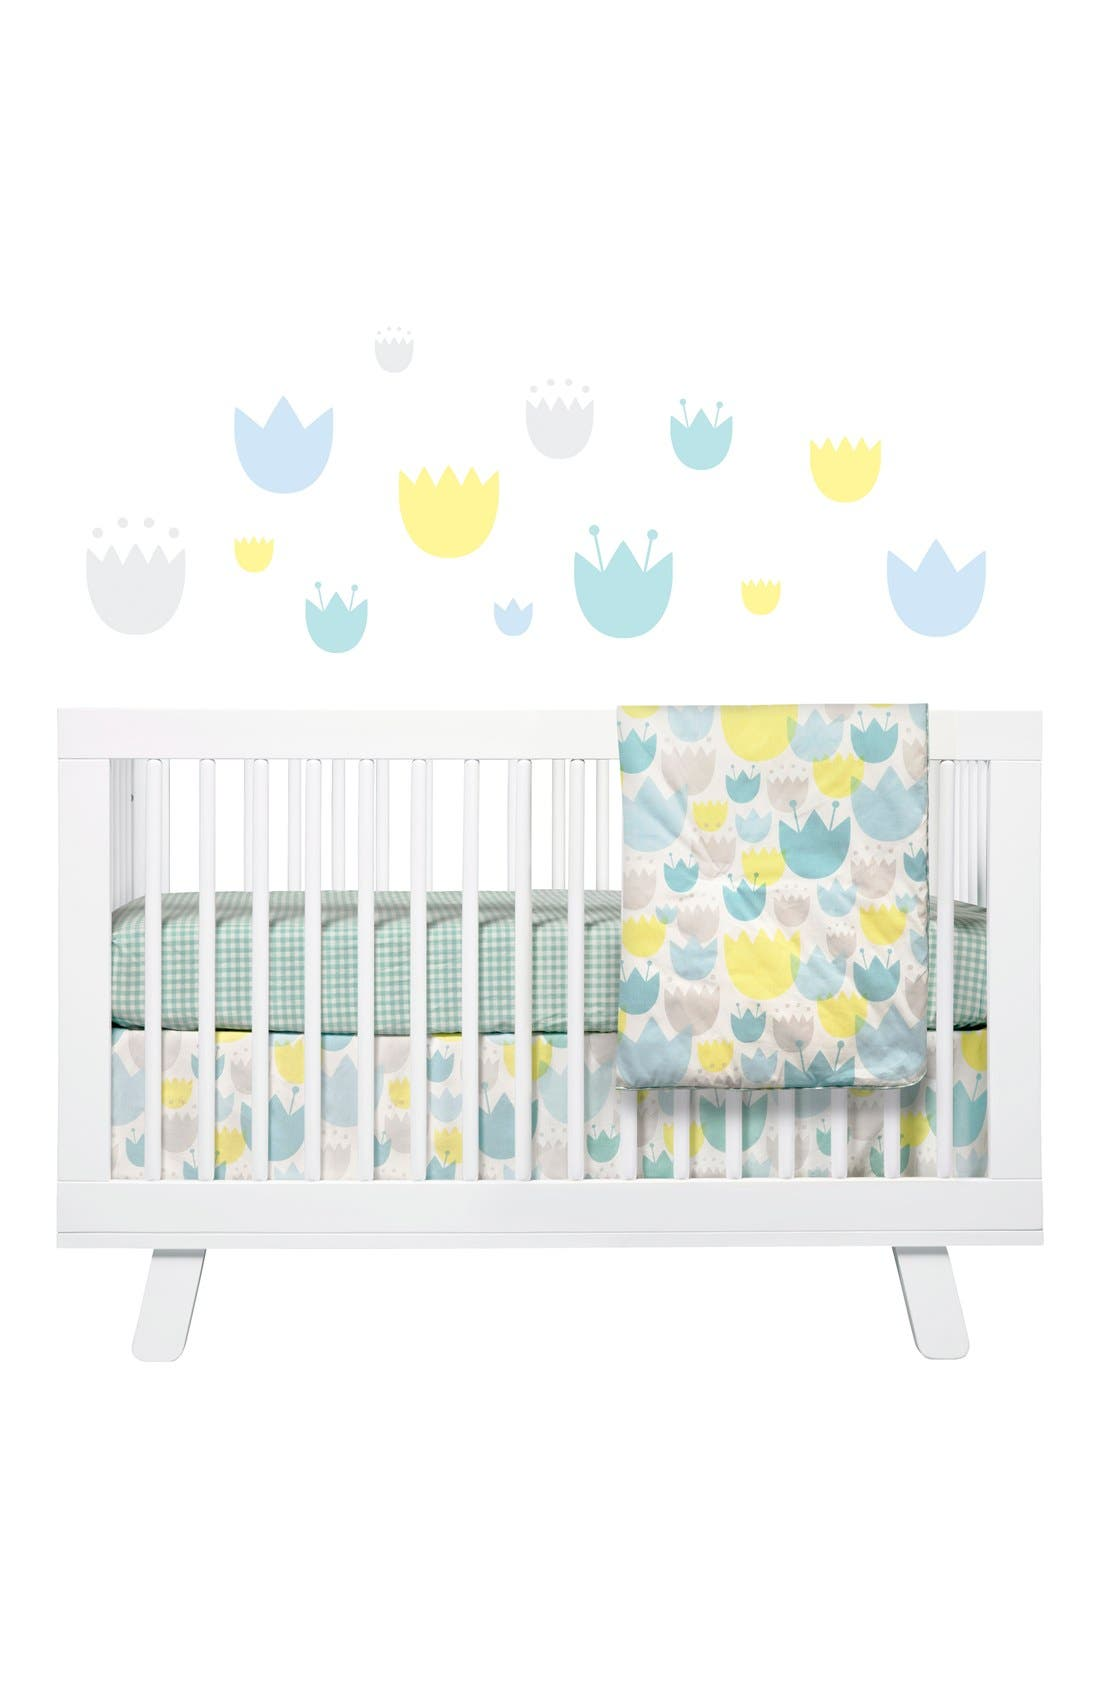 BABYLETTO 'Garden' Crib Sheet, Crib Skirt, Stroller Blanket